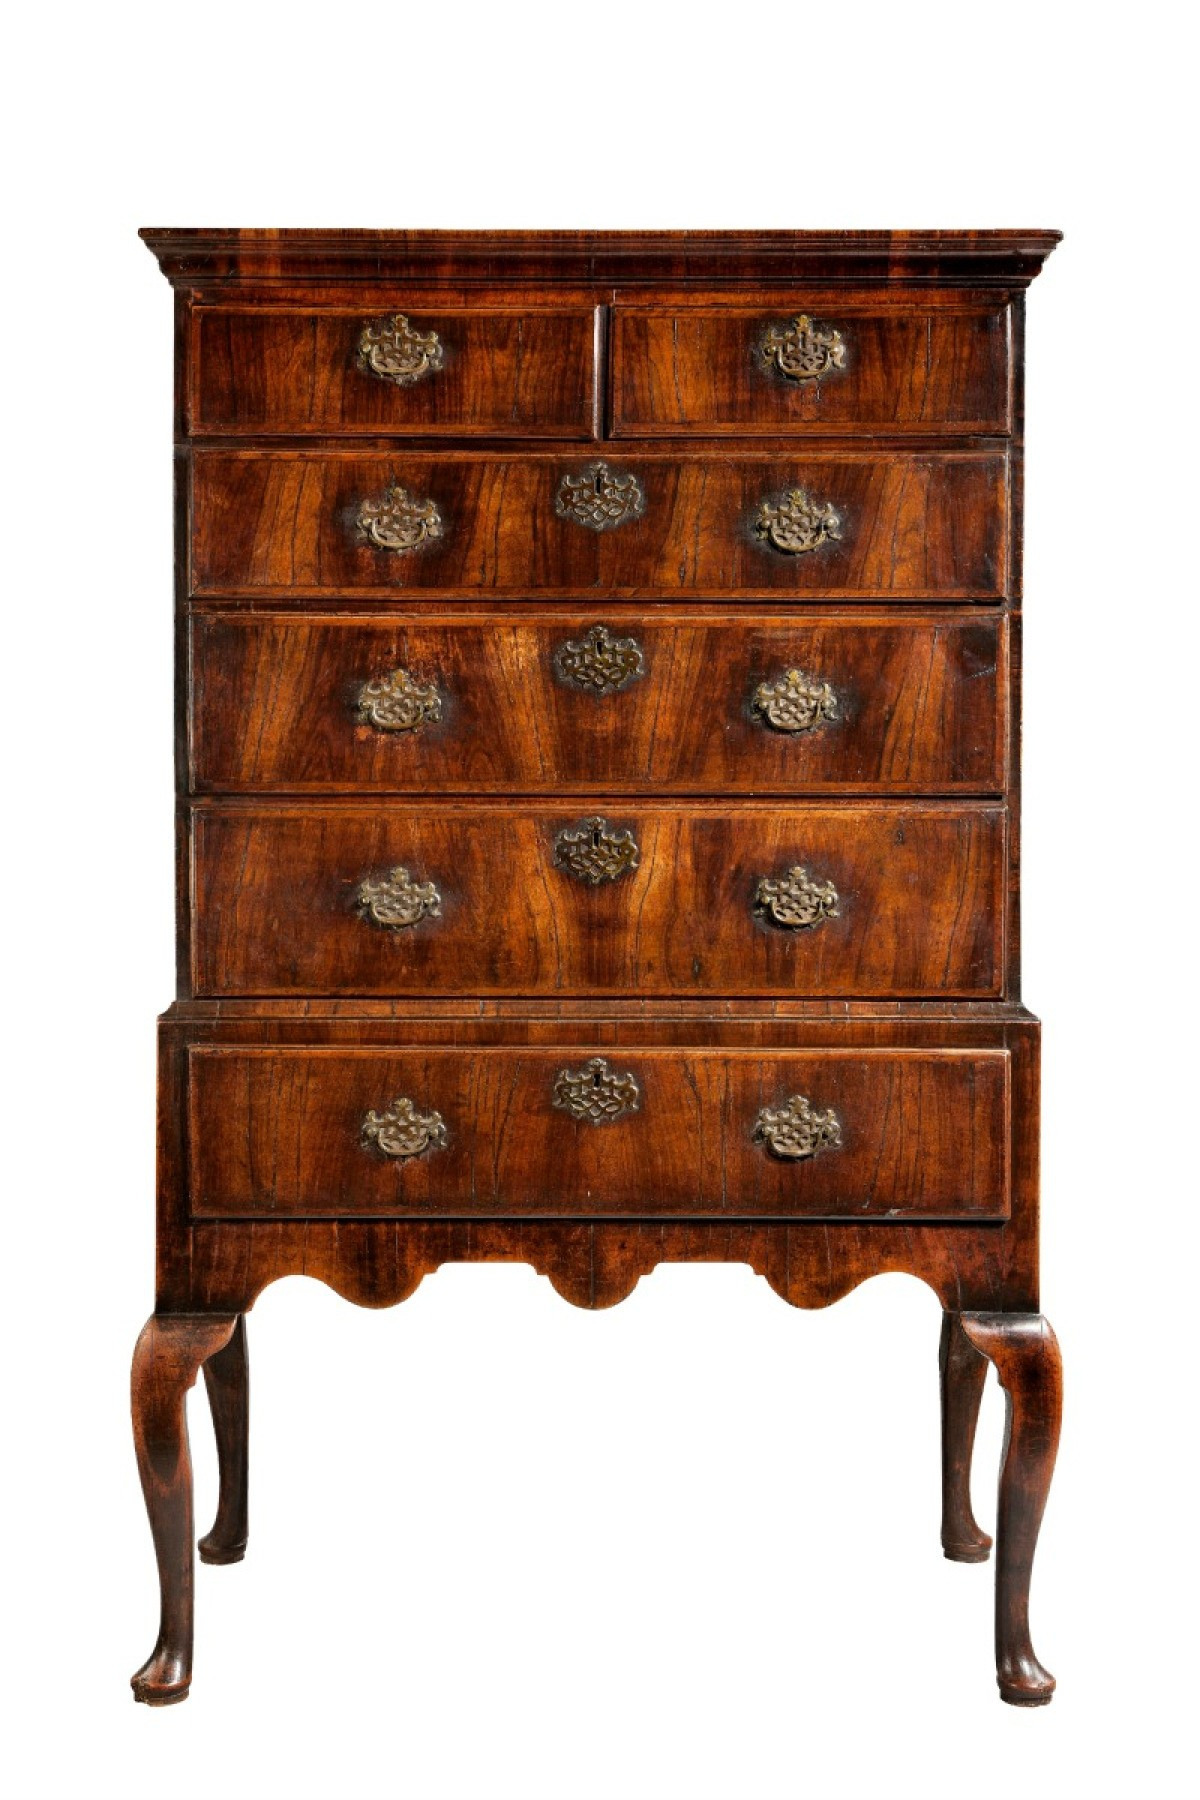 Antique Furniture for Sale Ebay New How to Sell Antique Furniture Line